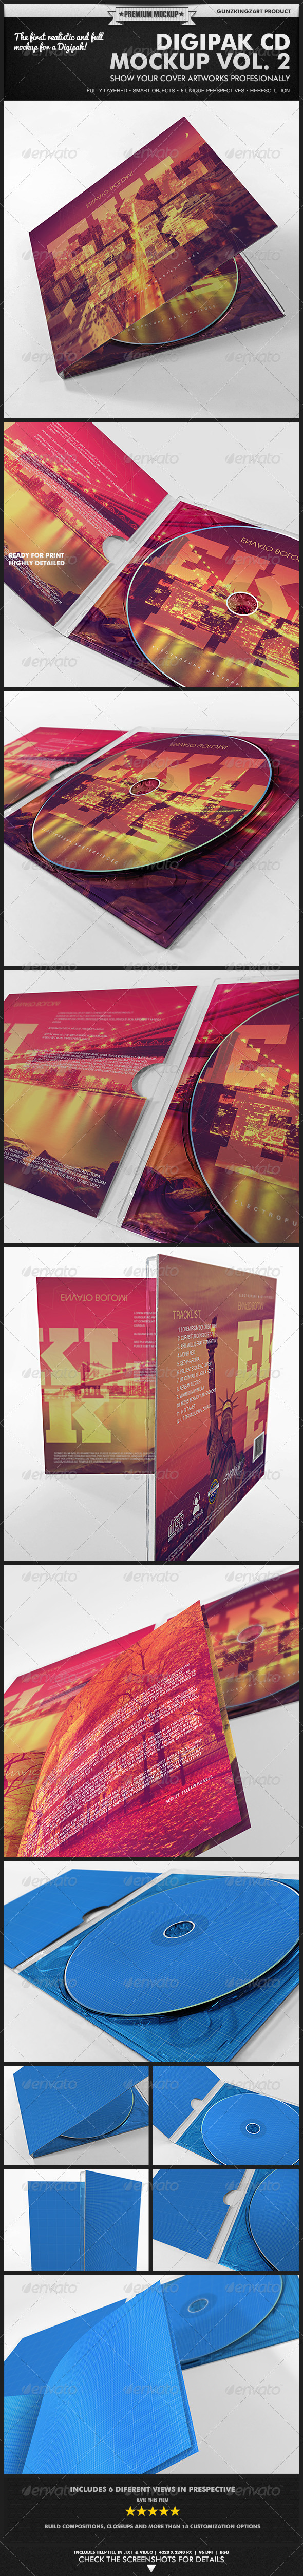 Digipak CD Mockup Vol. 2 - Kit - Discs Packaging